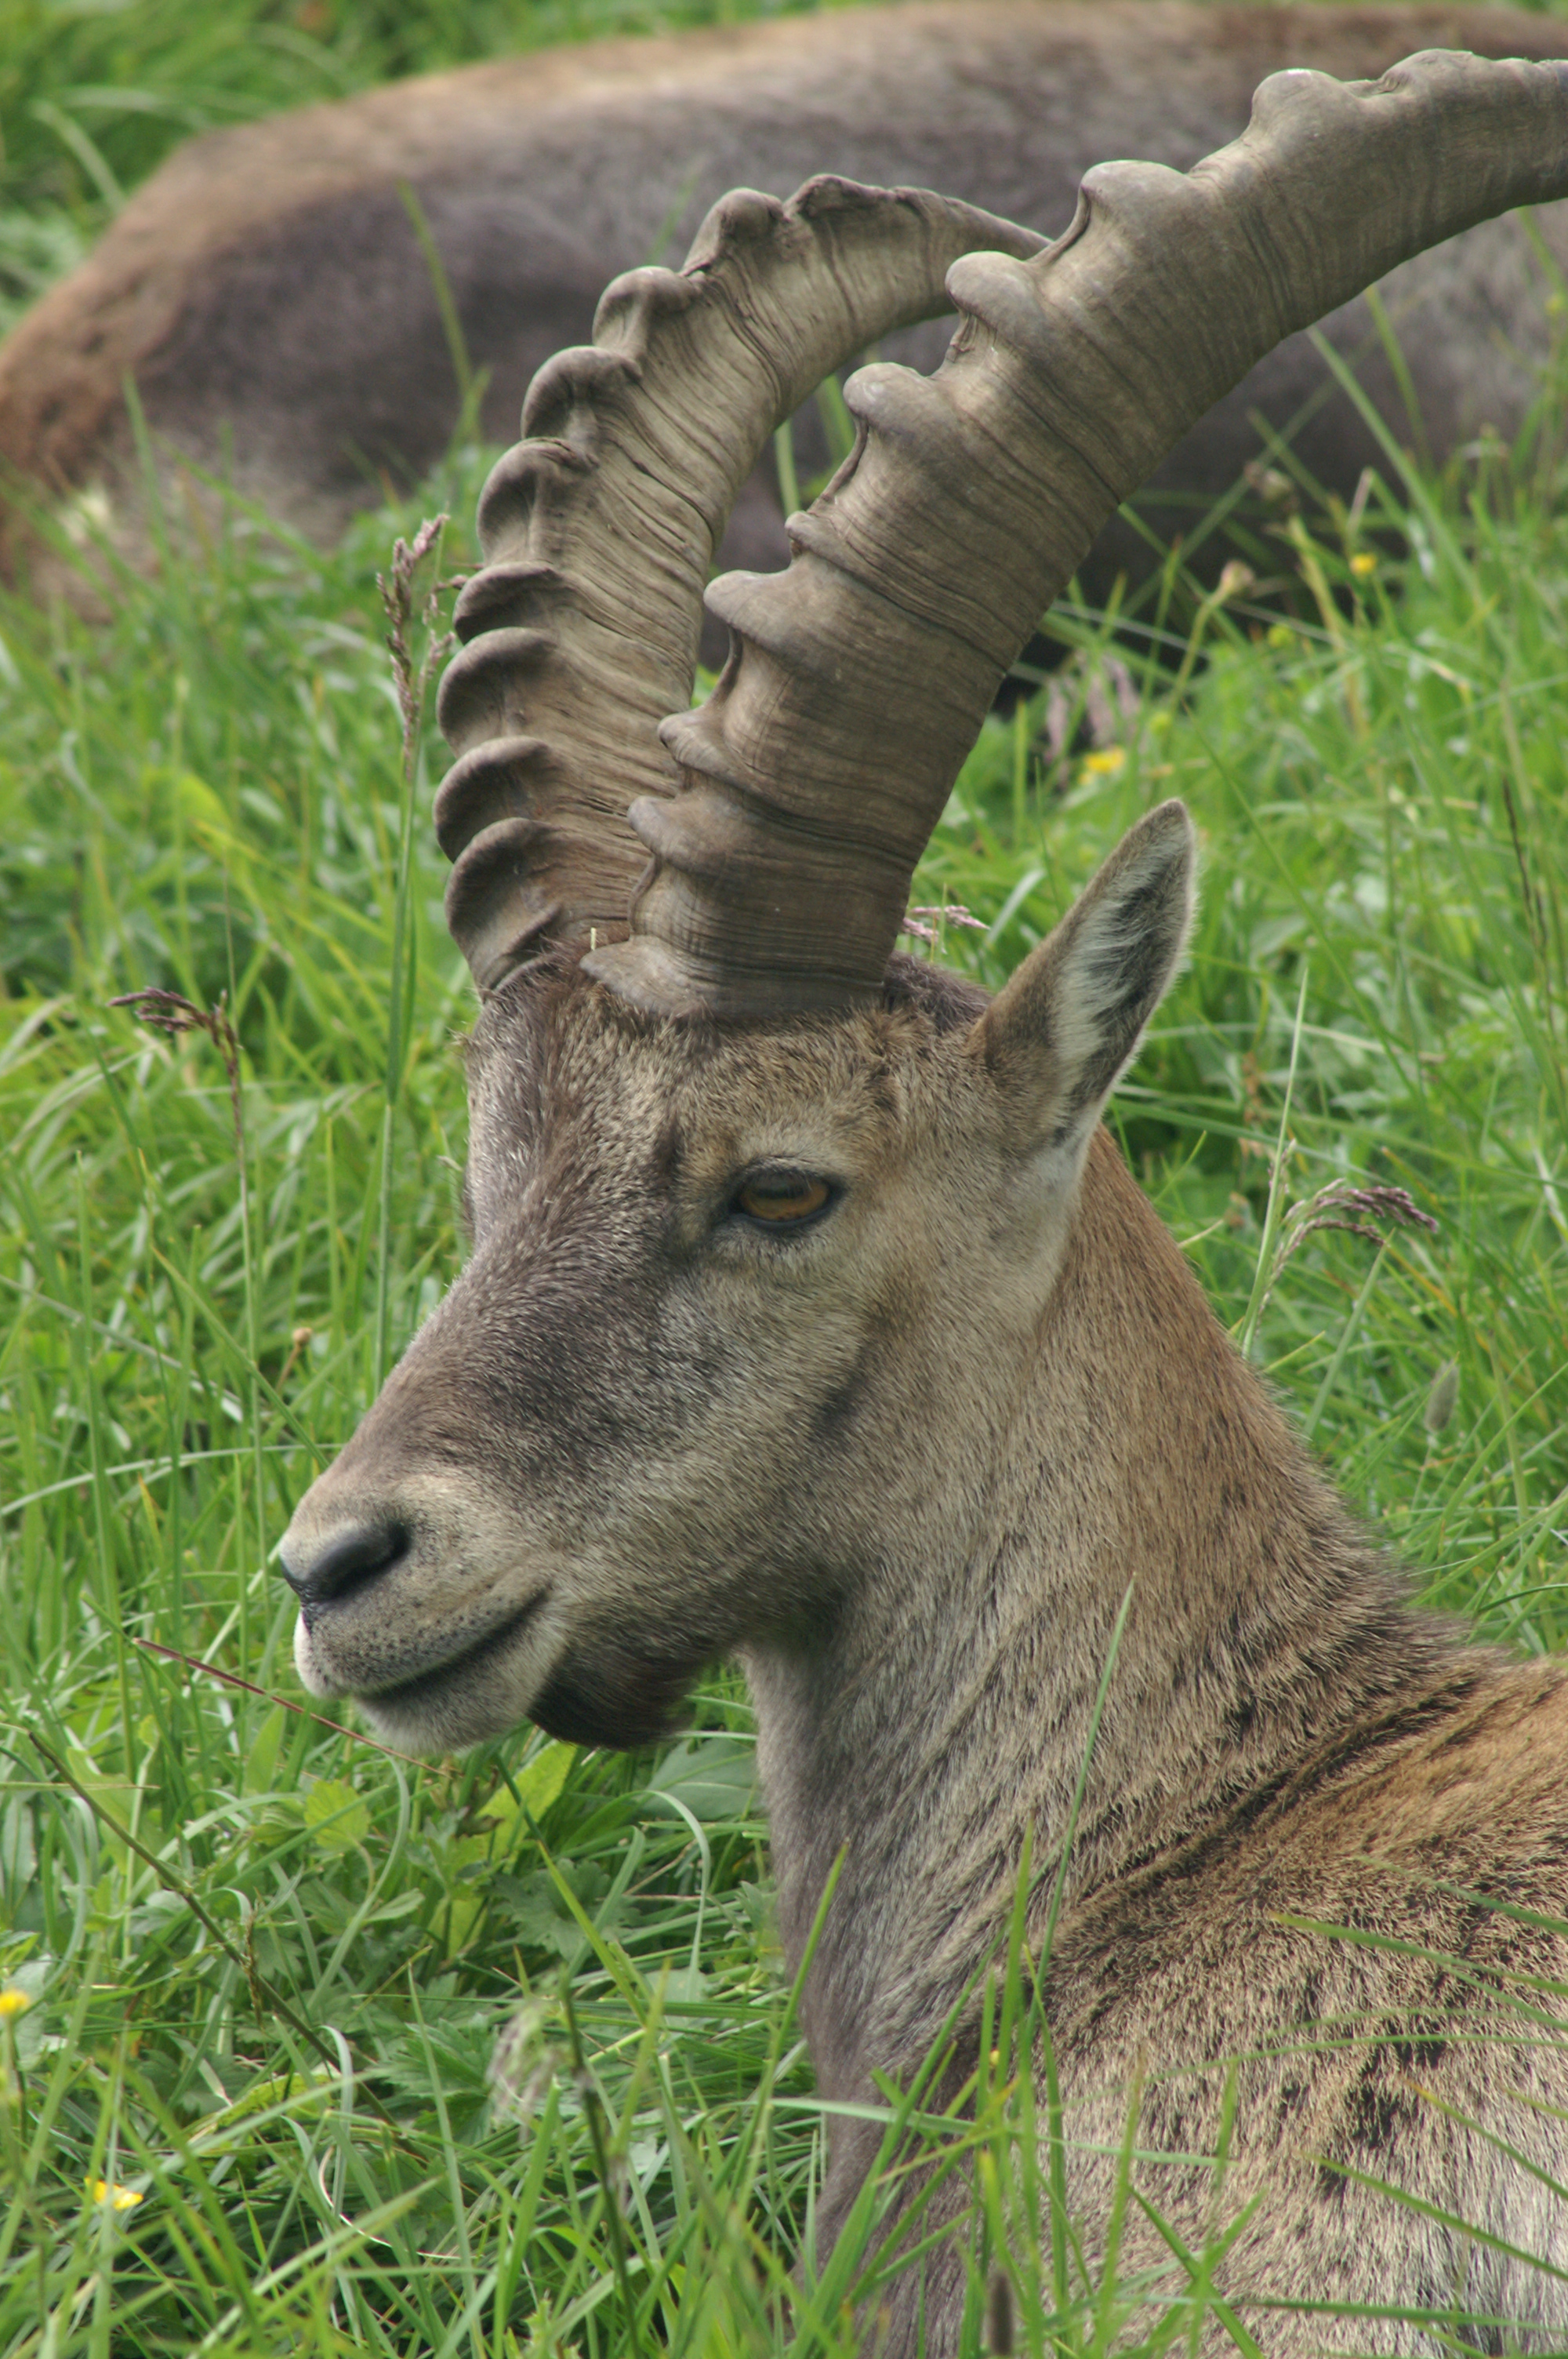 https://upload.wikimedia.org/wikipedia/commons/b/ba/Steinbock_ibex_2.JPG